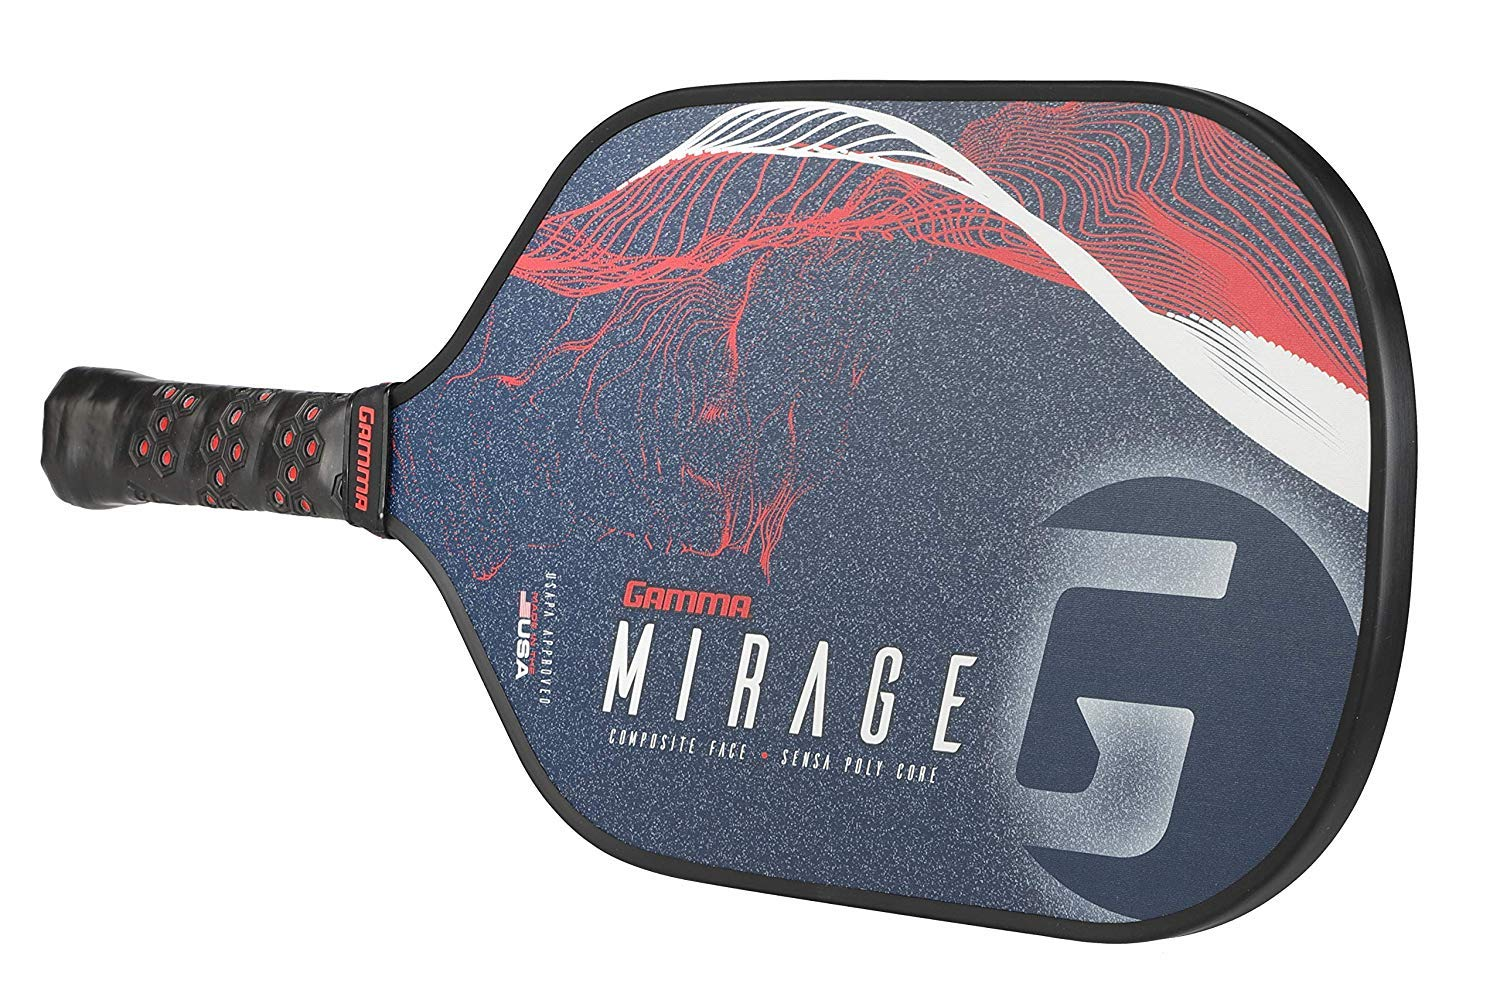 GAMMA Mirage Composite Pickleball Paddle: Pickle Ball Paddles for Indoor & Outdoor Play - USAPA Approved Racquet for Adults & Kids - Red/White/Blue by Gamma (Image #5)